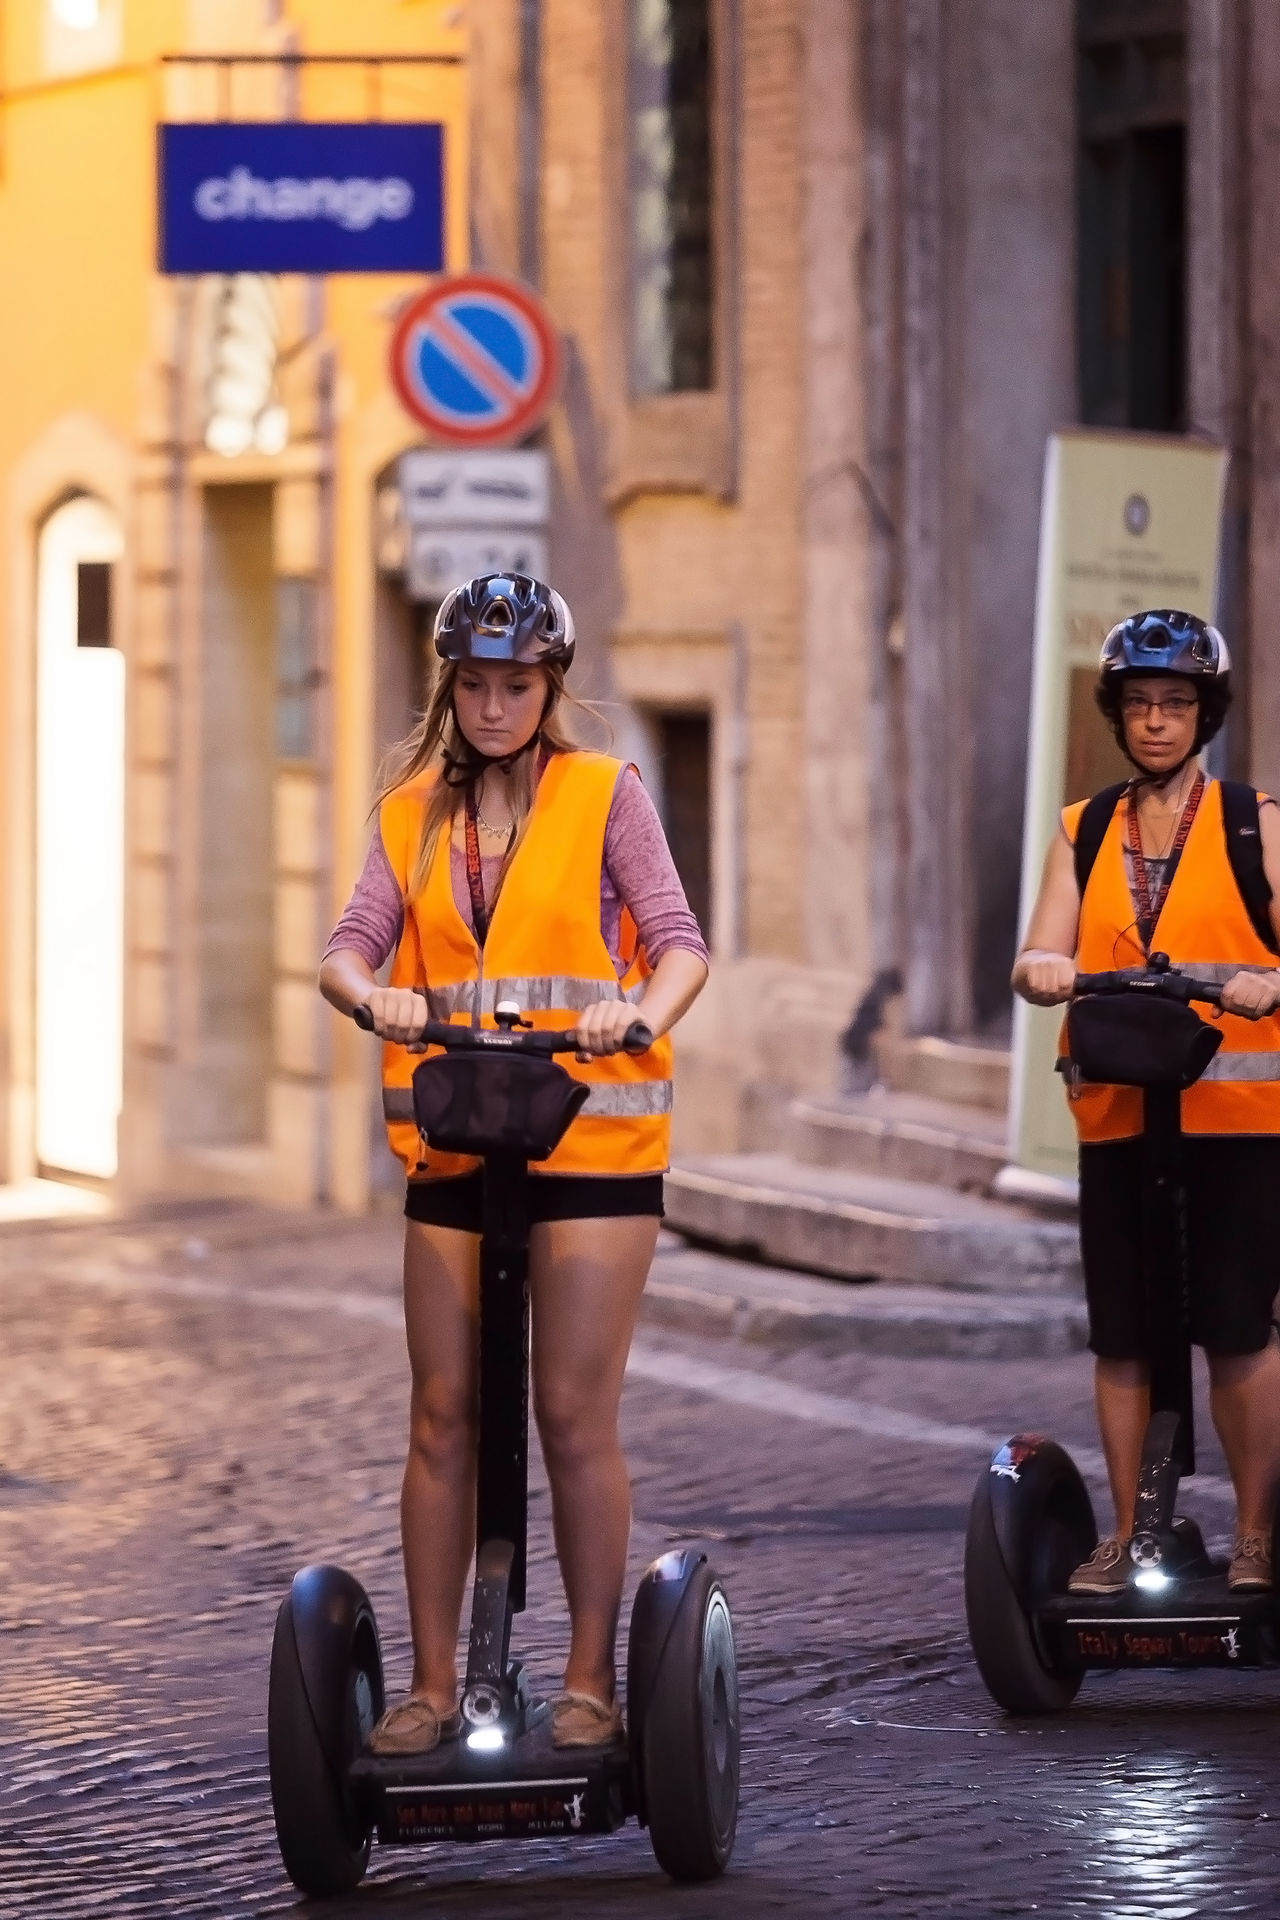 Rome, Italy - August 3, 2016: Two girls pass through the narrow streets of the city center with the help of a modern segway. Alley City City Life Cobblestones Day Girls Helmet Lifestyles Means Of Transport Modern Move New Technology Object Outdoors Reflective Vest Rome Segways Street